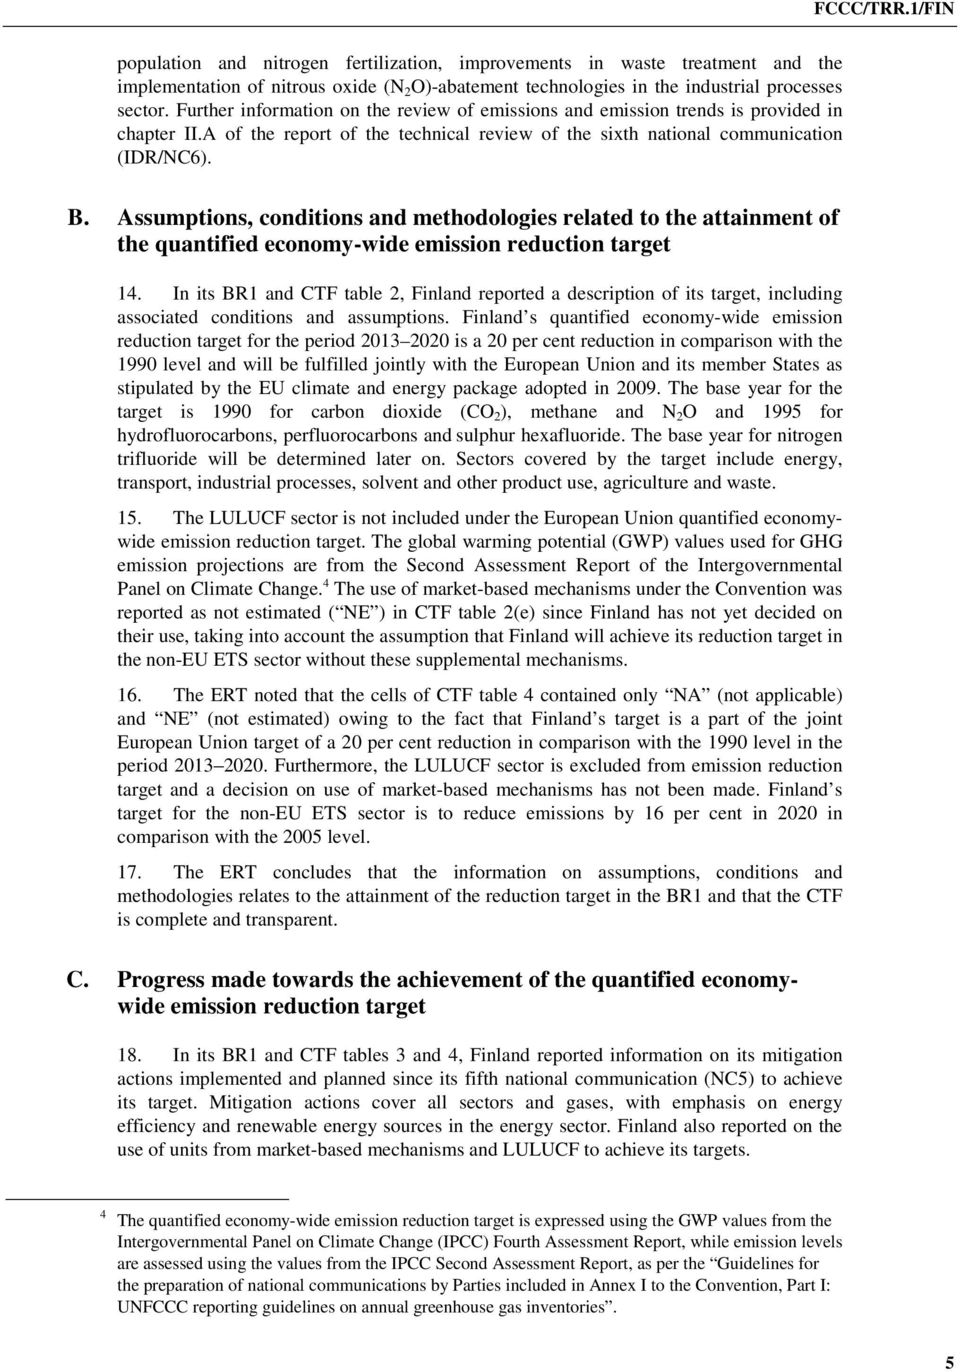 Assumptions, conditions and methodologies related to the attainment of the quantified economy-wide emission reduction target 14.